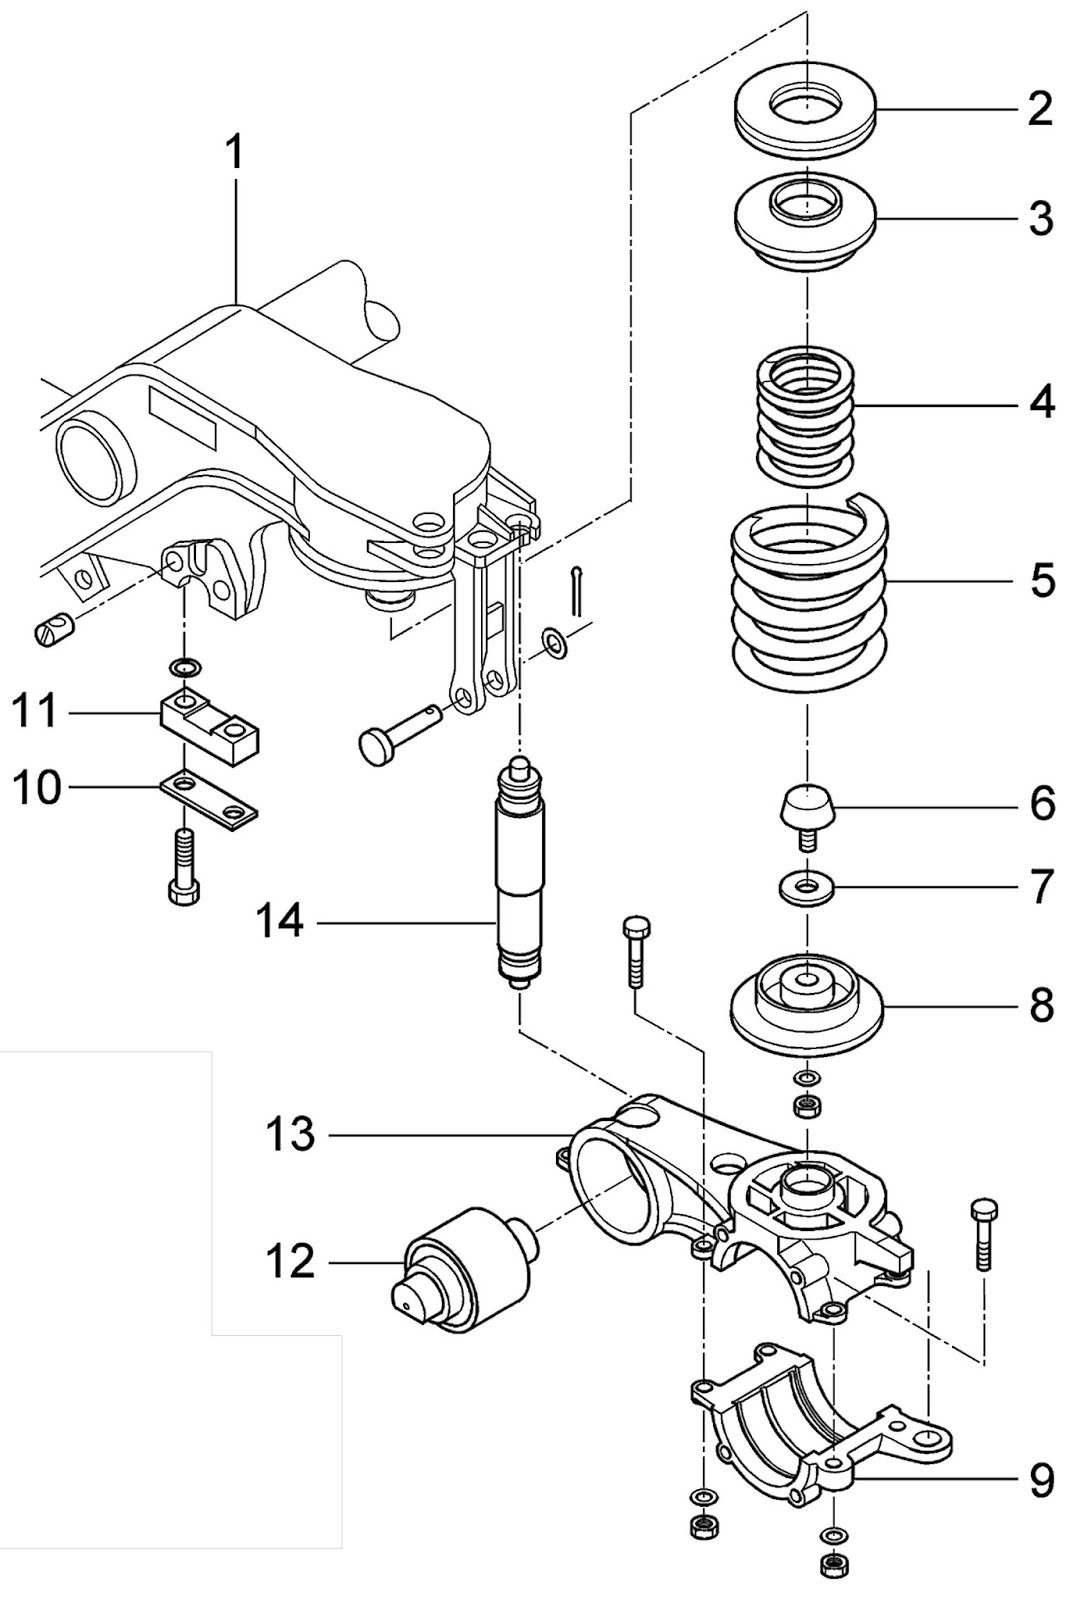 small resolution of primary suspension is implemented by two units of two steel coil springs internal 4 and external 5 laid out on the control arm upper part 13 by a